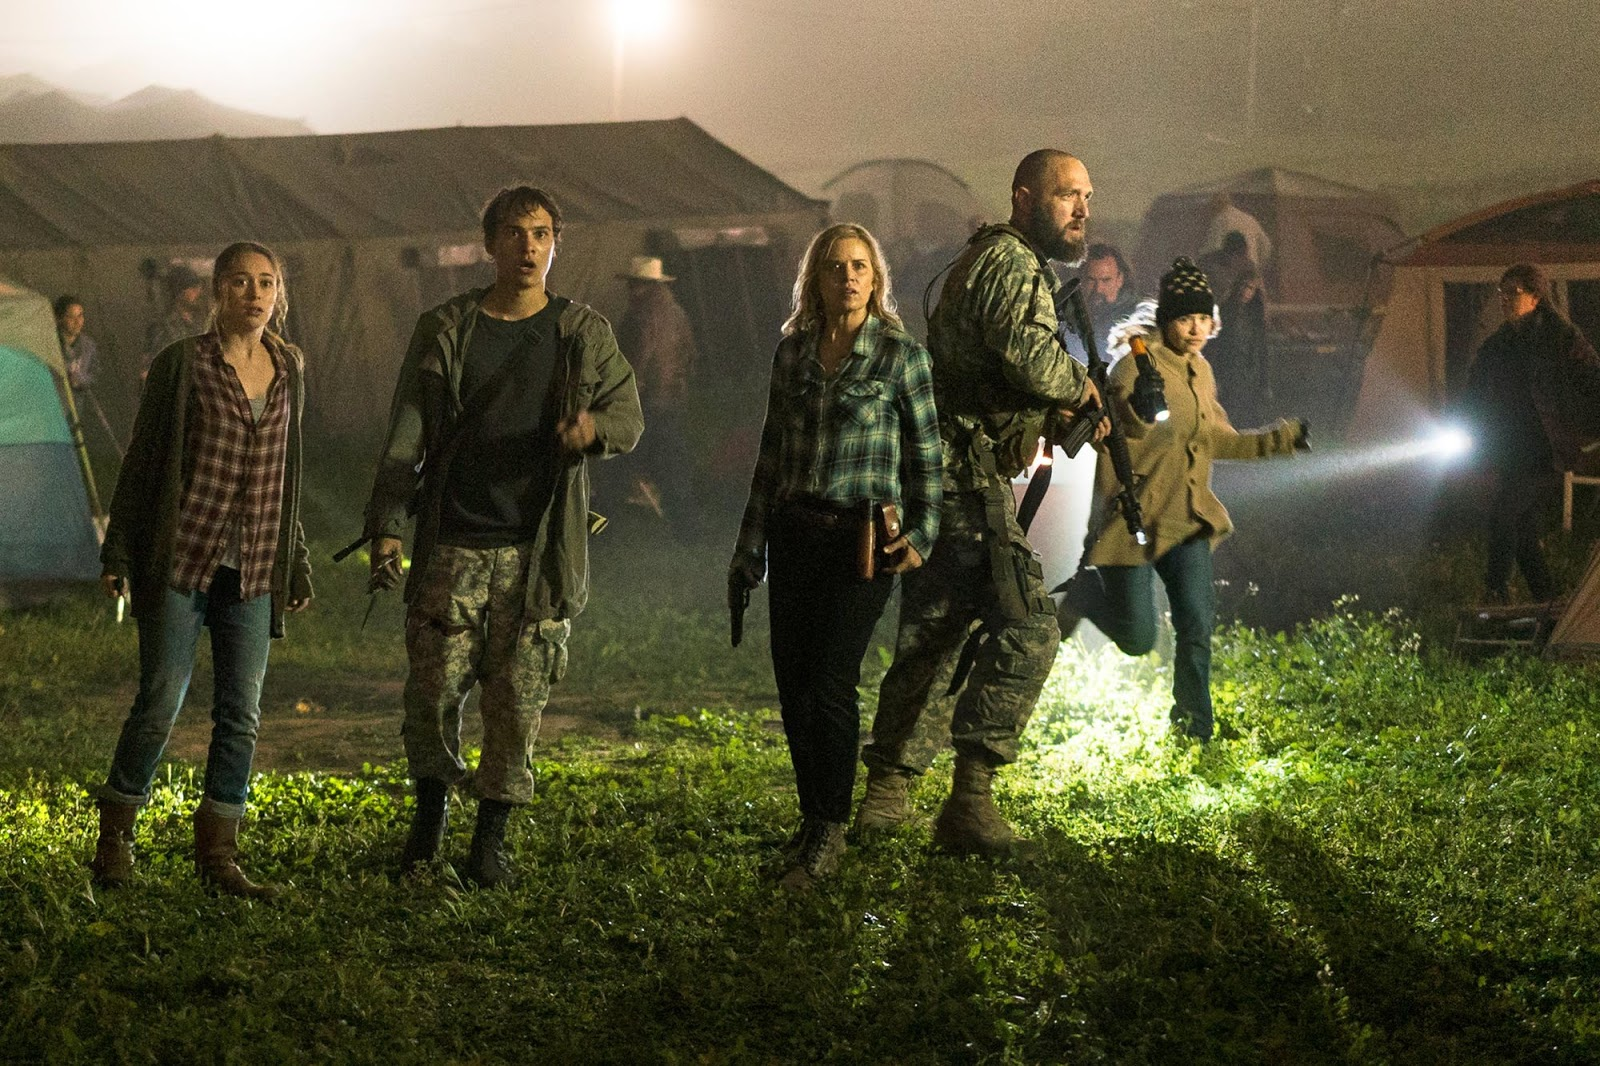 Madison Nick Alicia en la midseason finale de la tercera temporada de Fear The Walking Dead